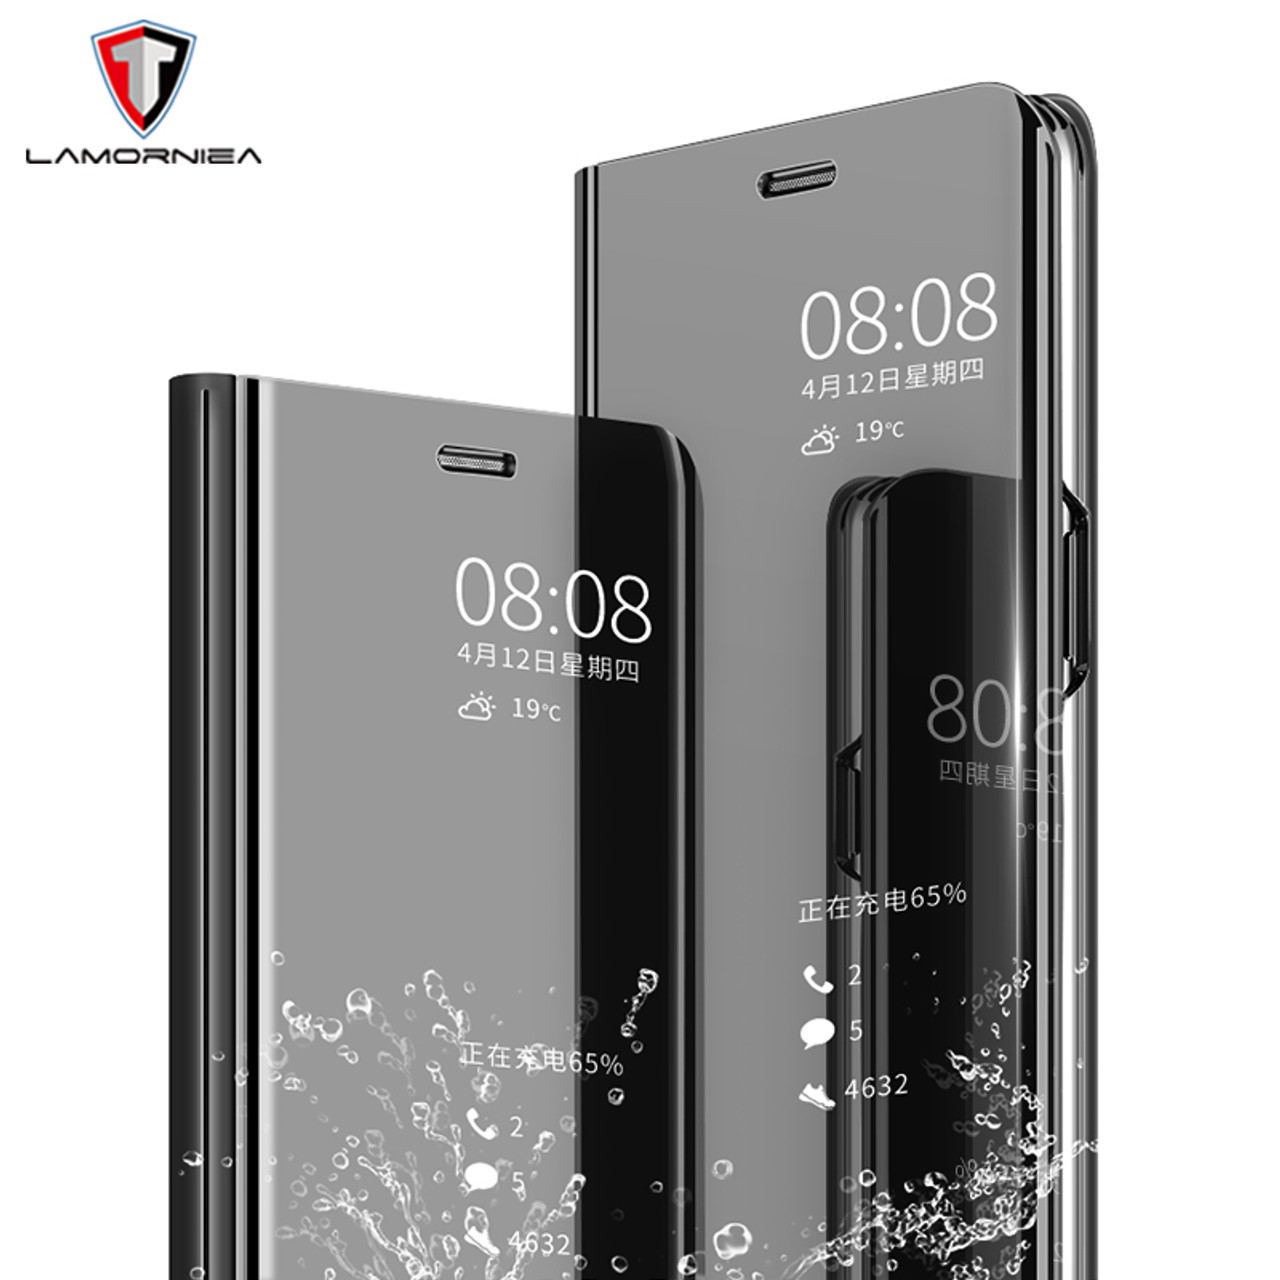 finest selection 821c4 720d5 Mirror Case For Xiaomi Mi Mix 2 Luxury Flip Stand Cover For RedMi 5  Plus/Note 5A /Mi 5X A1/Mi Note 3/RedMi 4X/RedMi Note 4X 5 5C